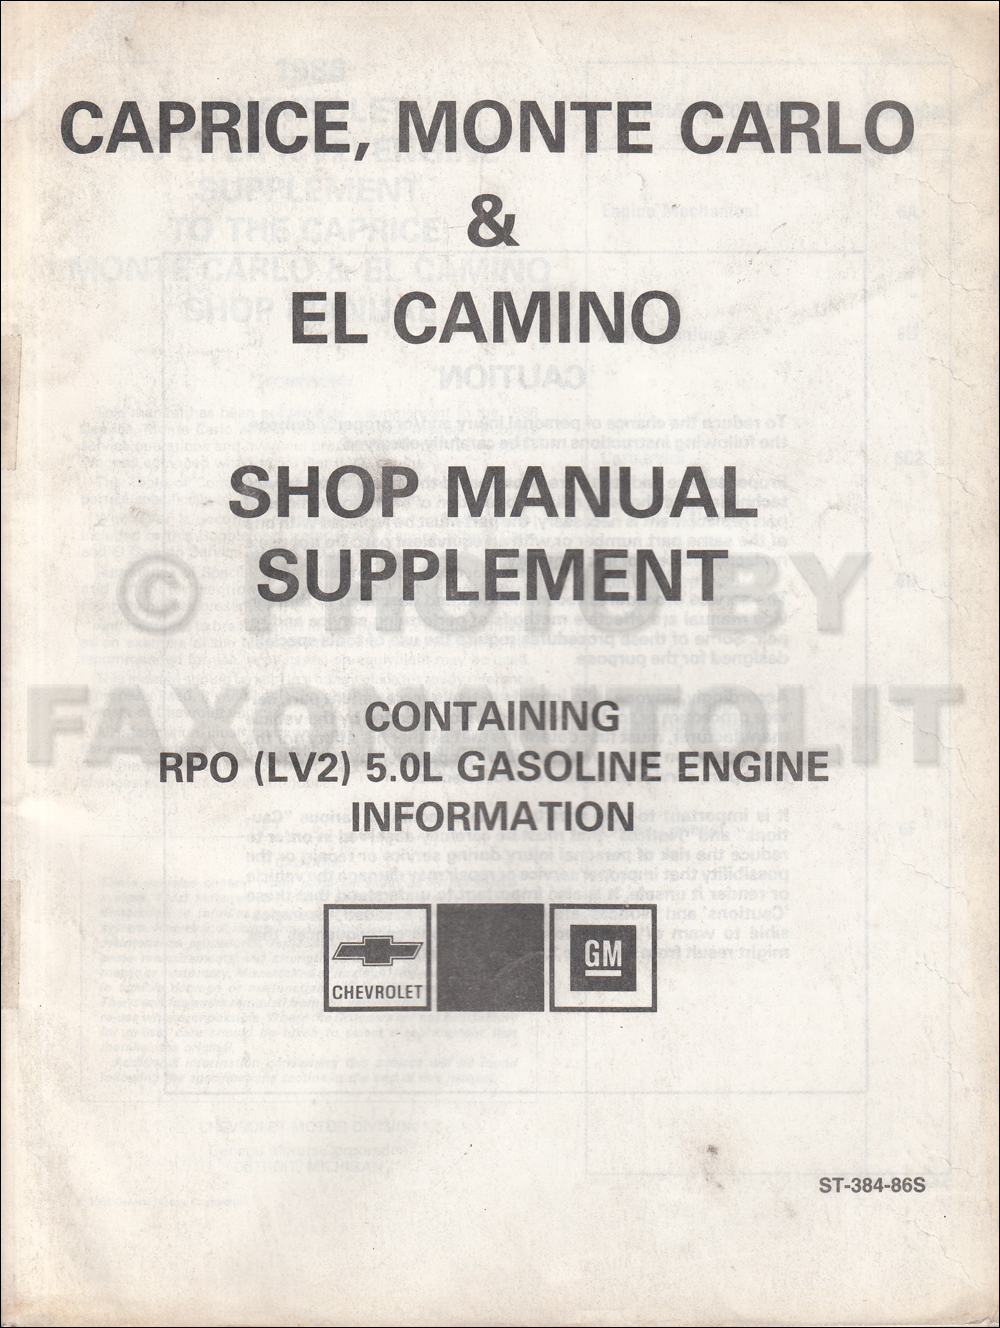 1986 Chevrolet Caprice Station Wagon Repair Shop Manual Original Supplement 5.0 Engine RPO LV2